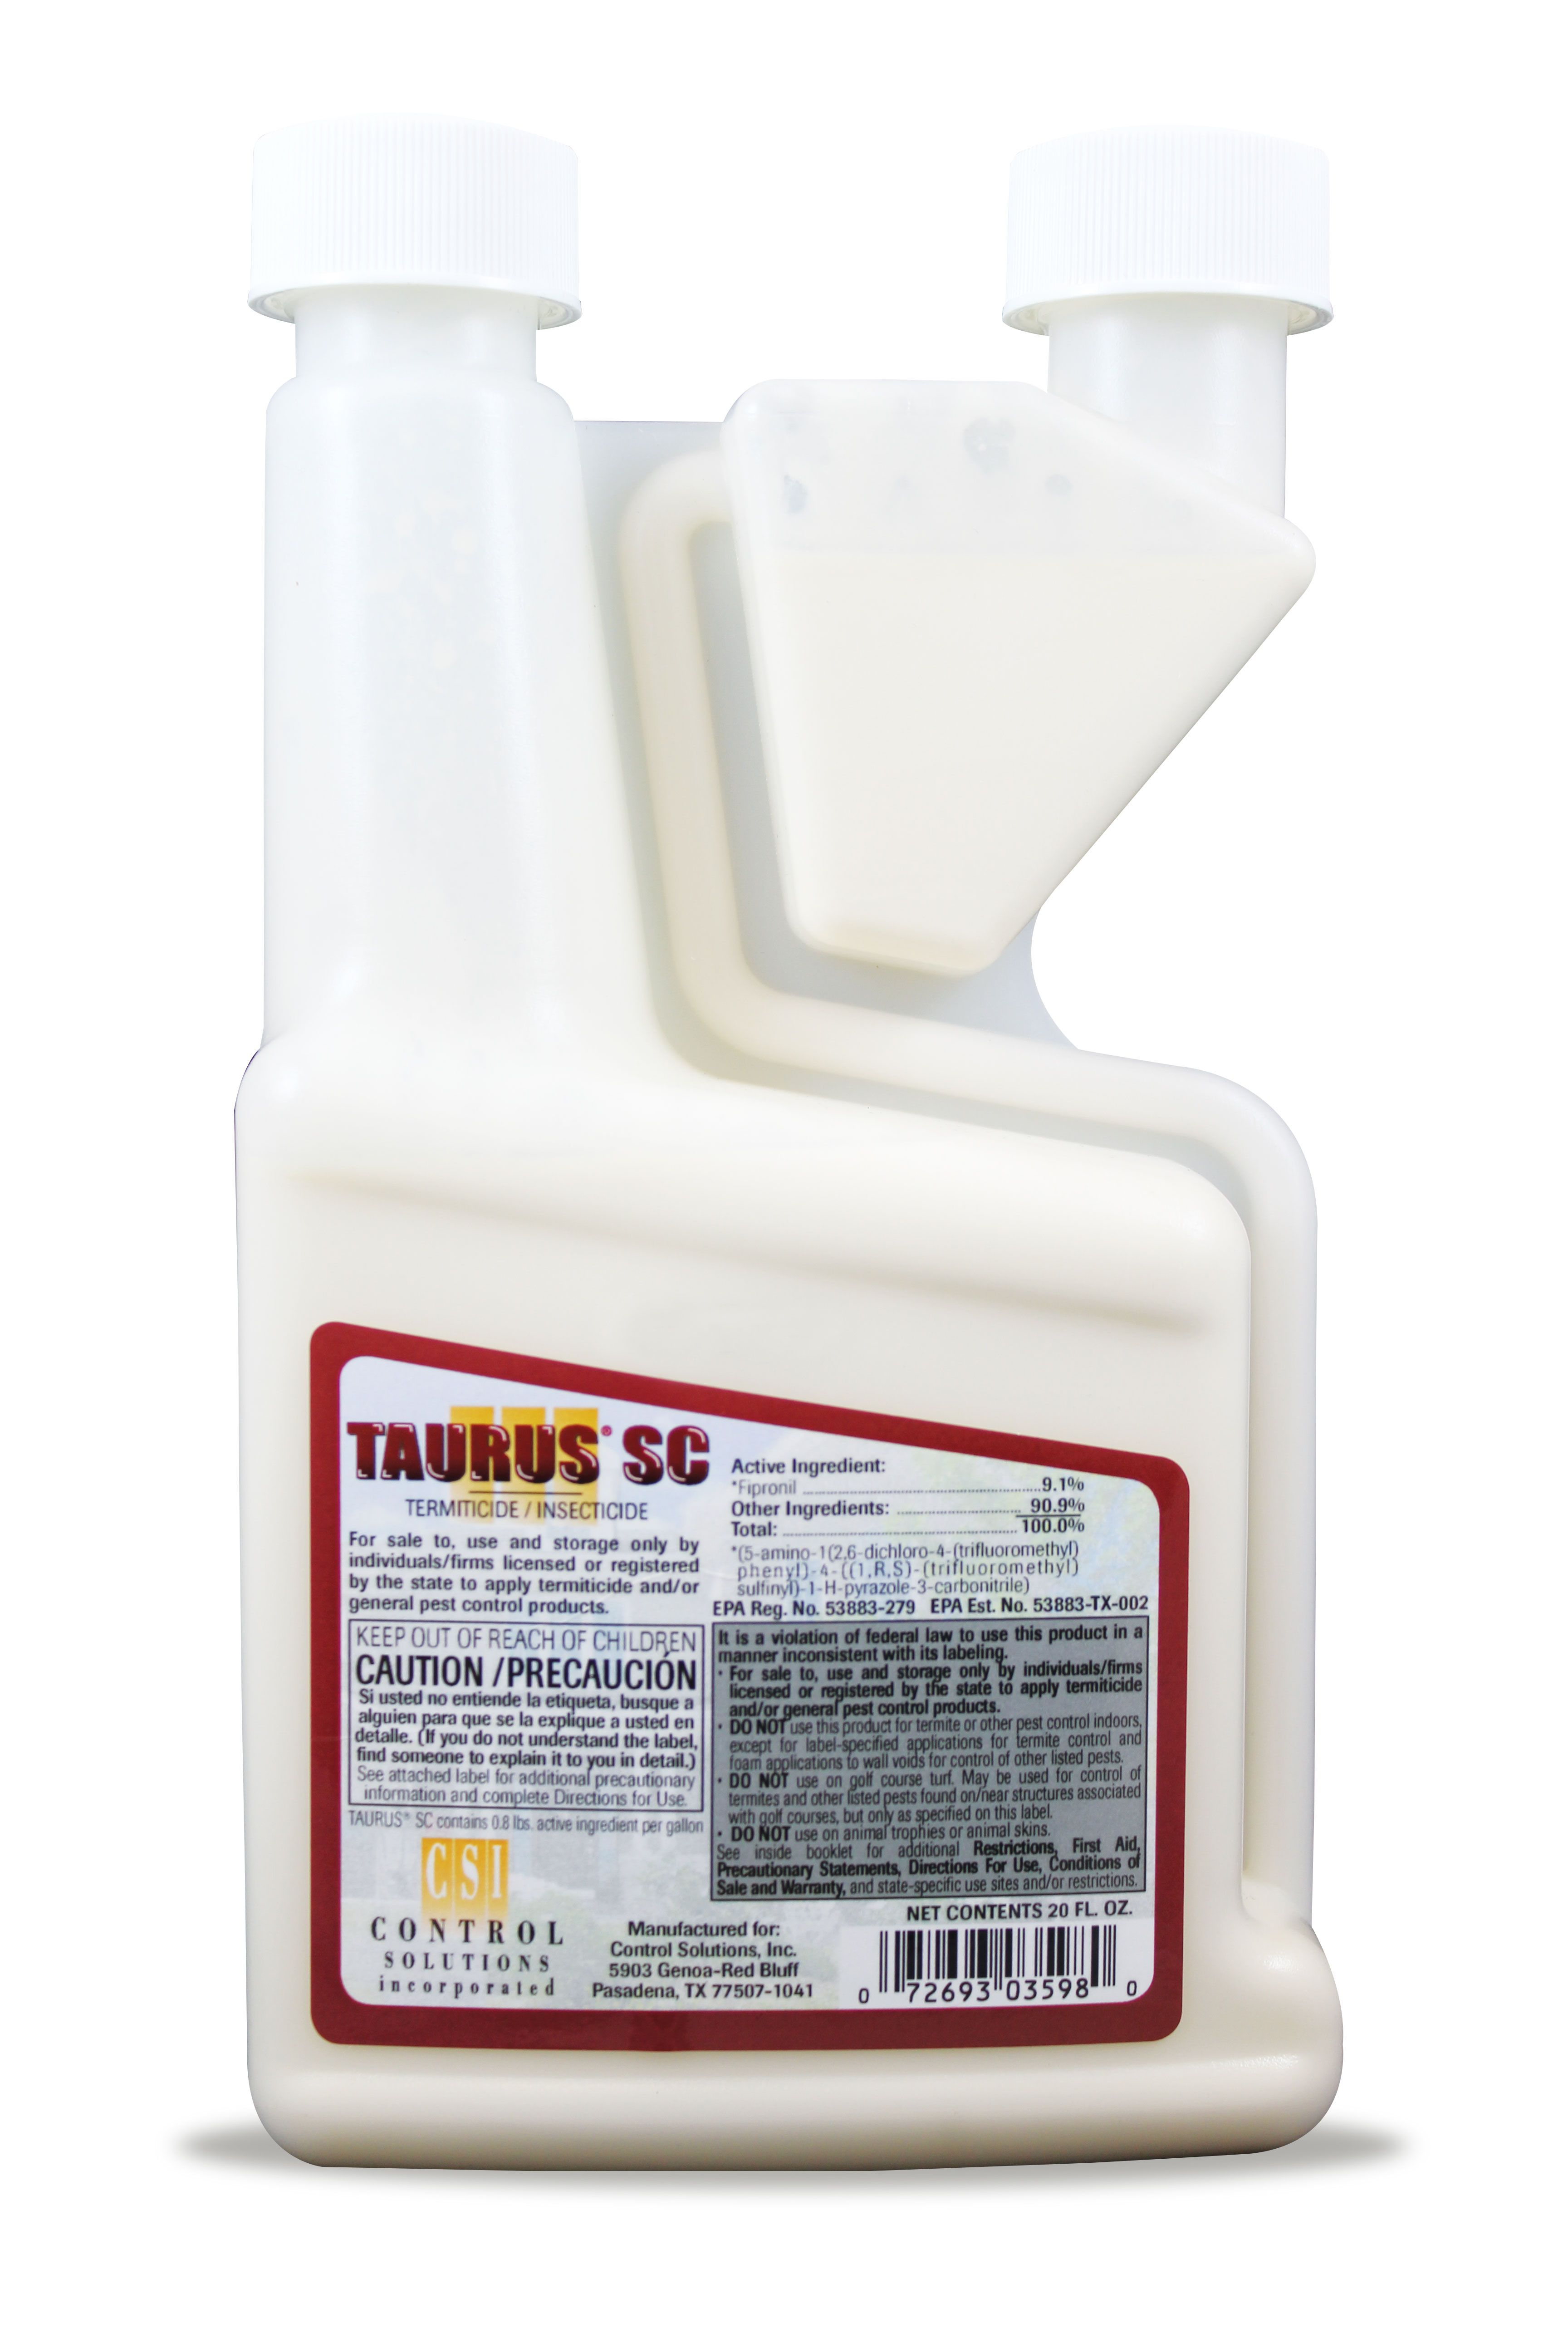 TAURUS SC is a water-based suspension concentrate of 9 1% Fipronil